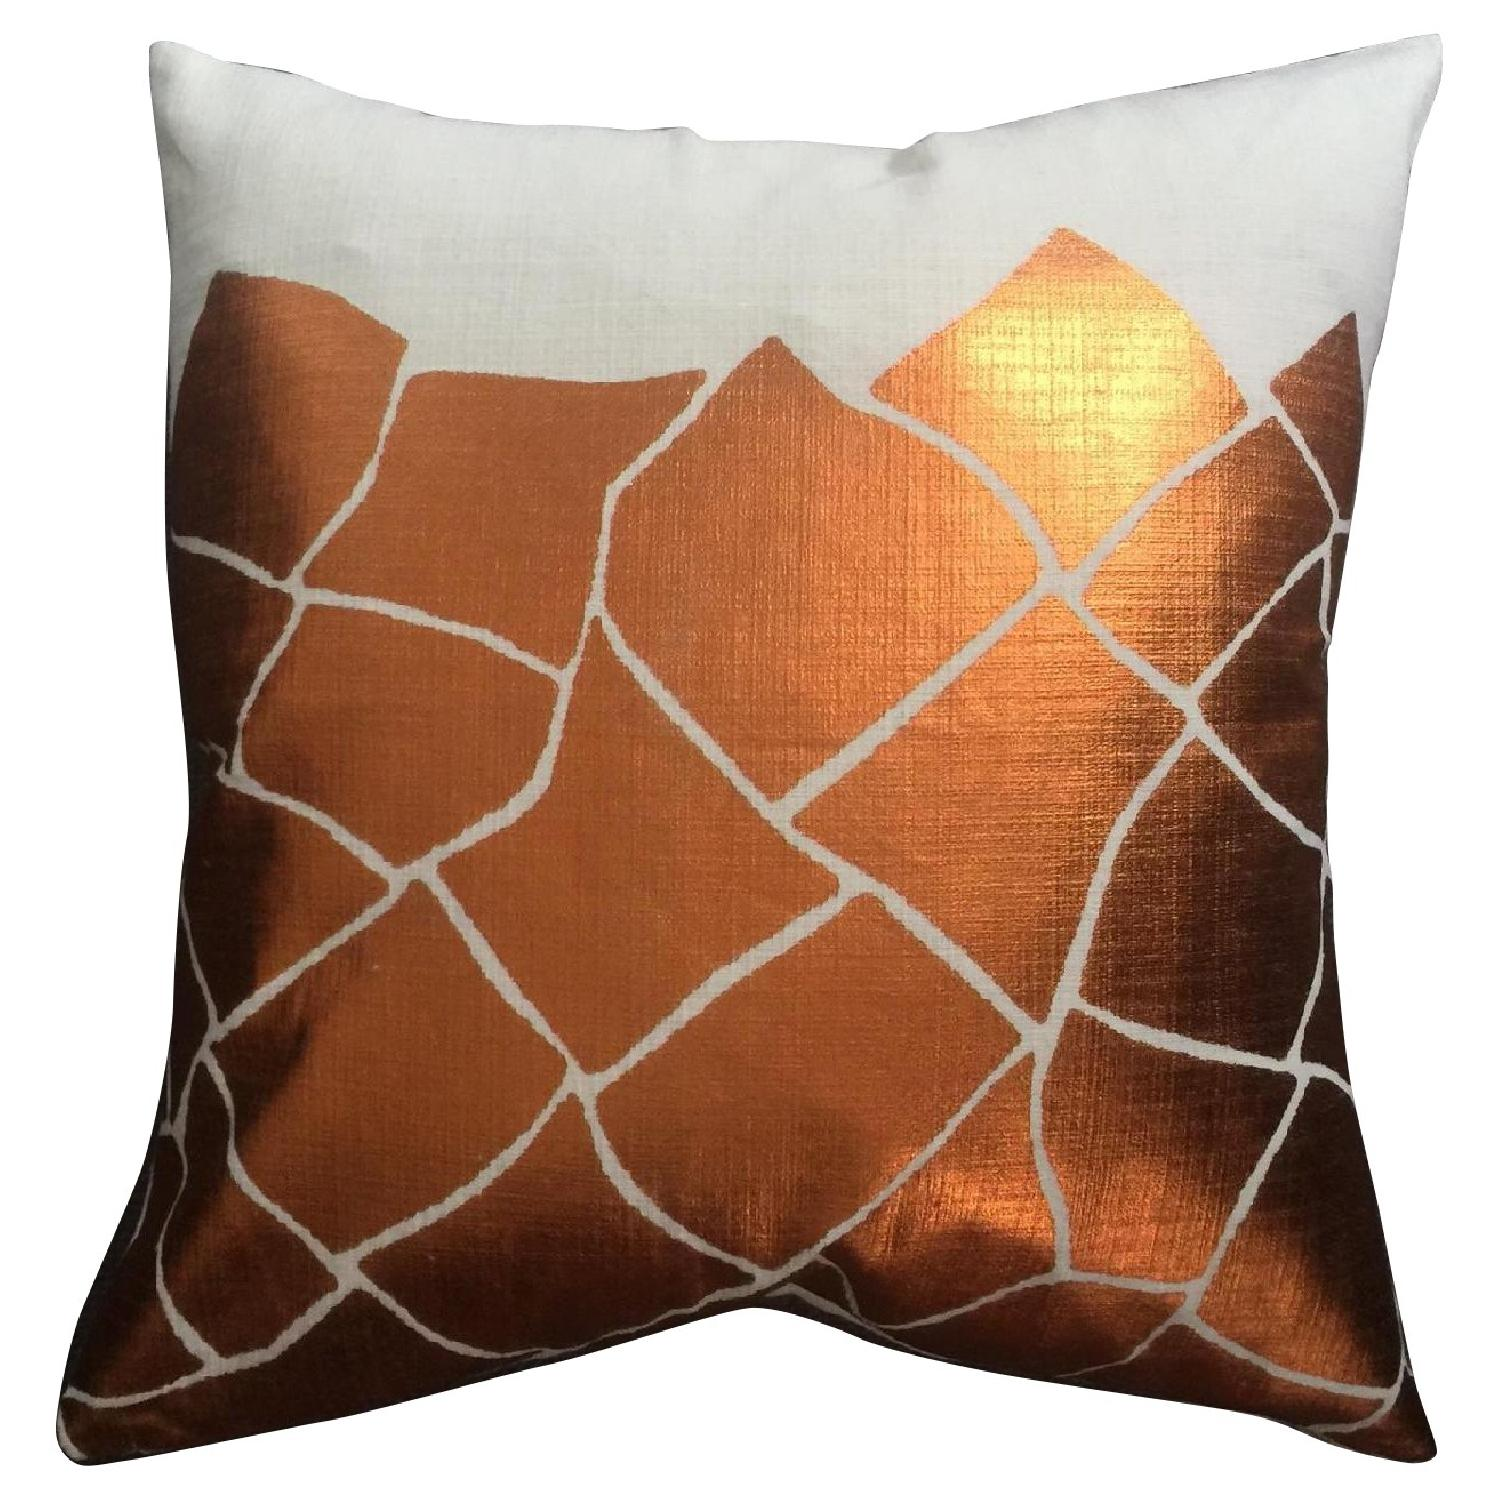 Cubist Metallic Printed Pillow